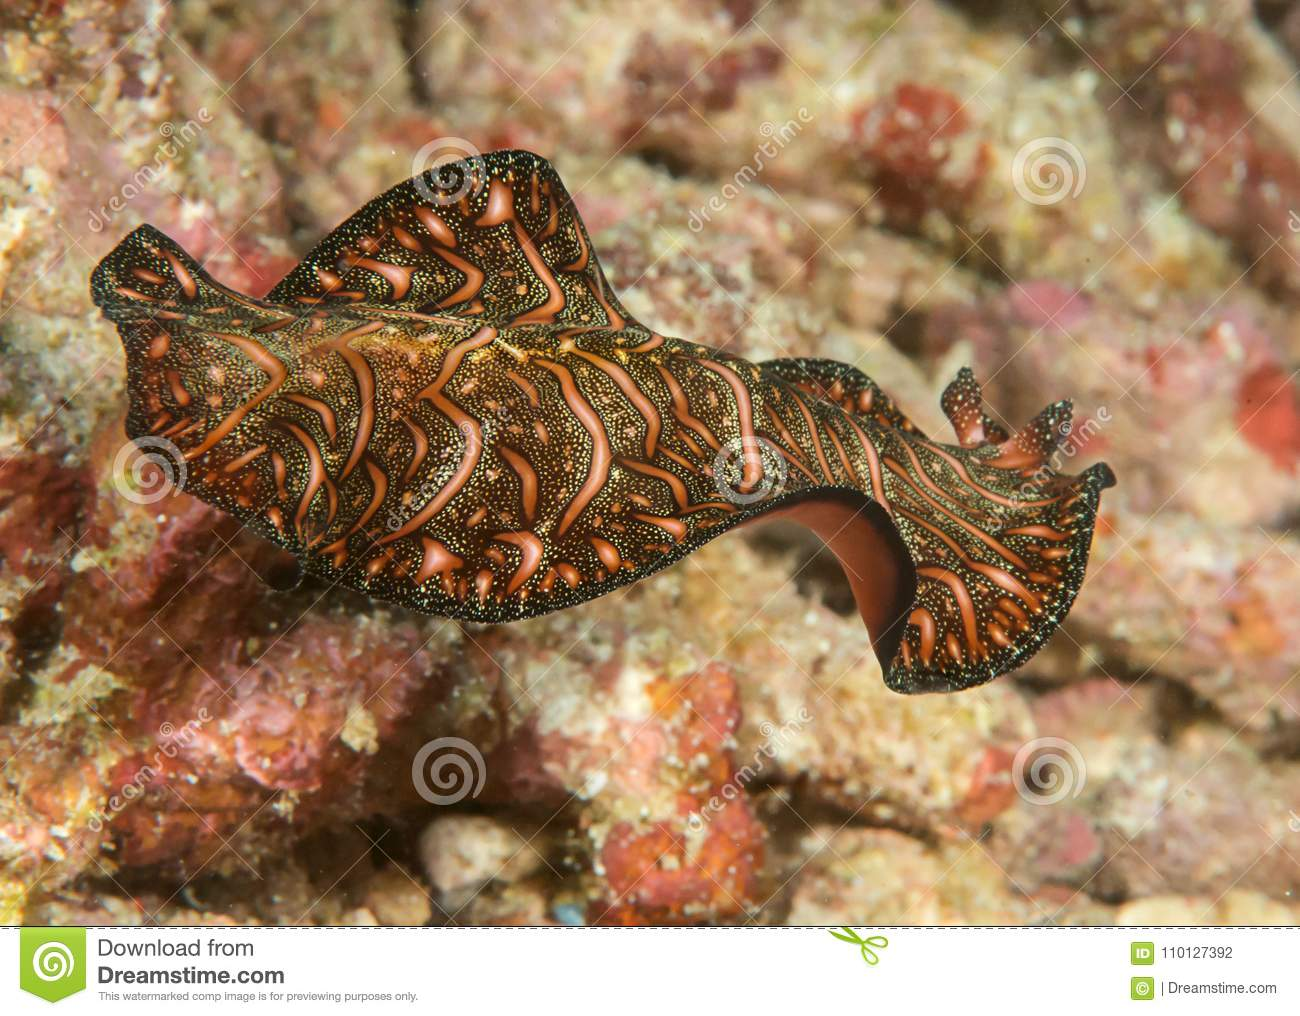 Closeup Of A Persian Carpet Flatworm Swimming Over Coral